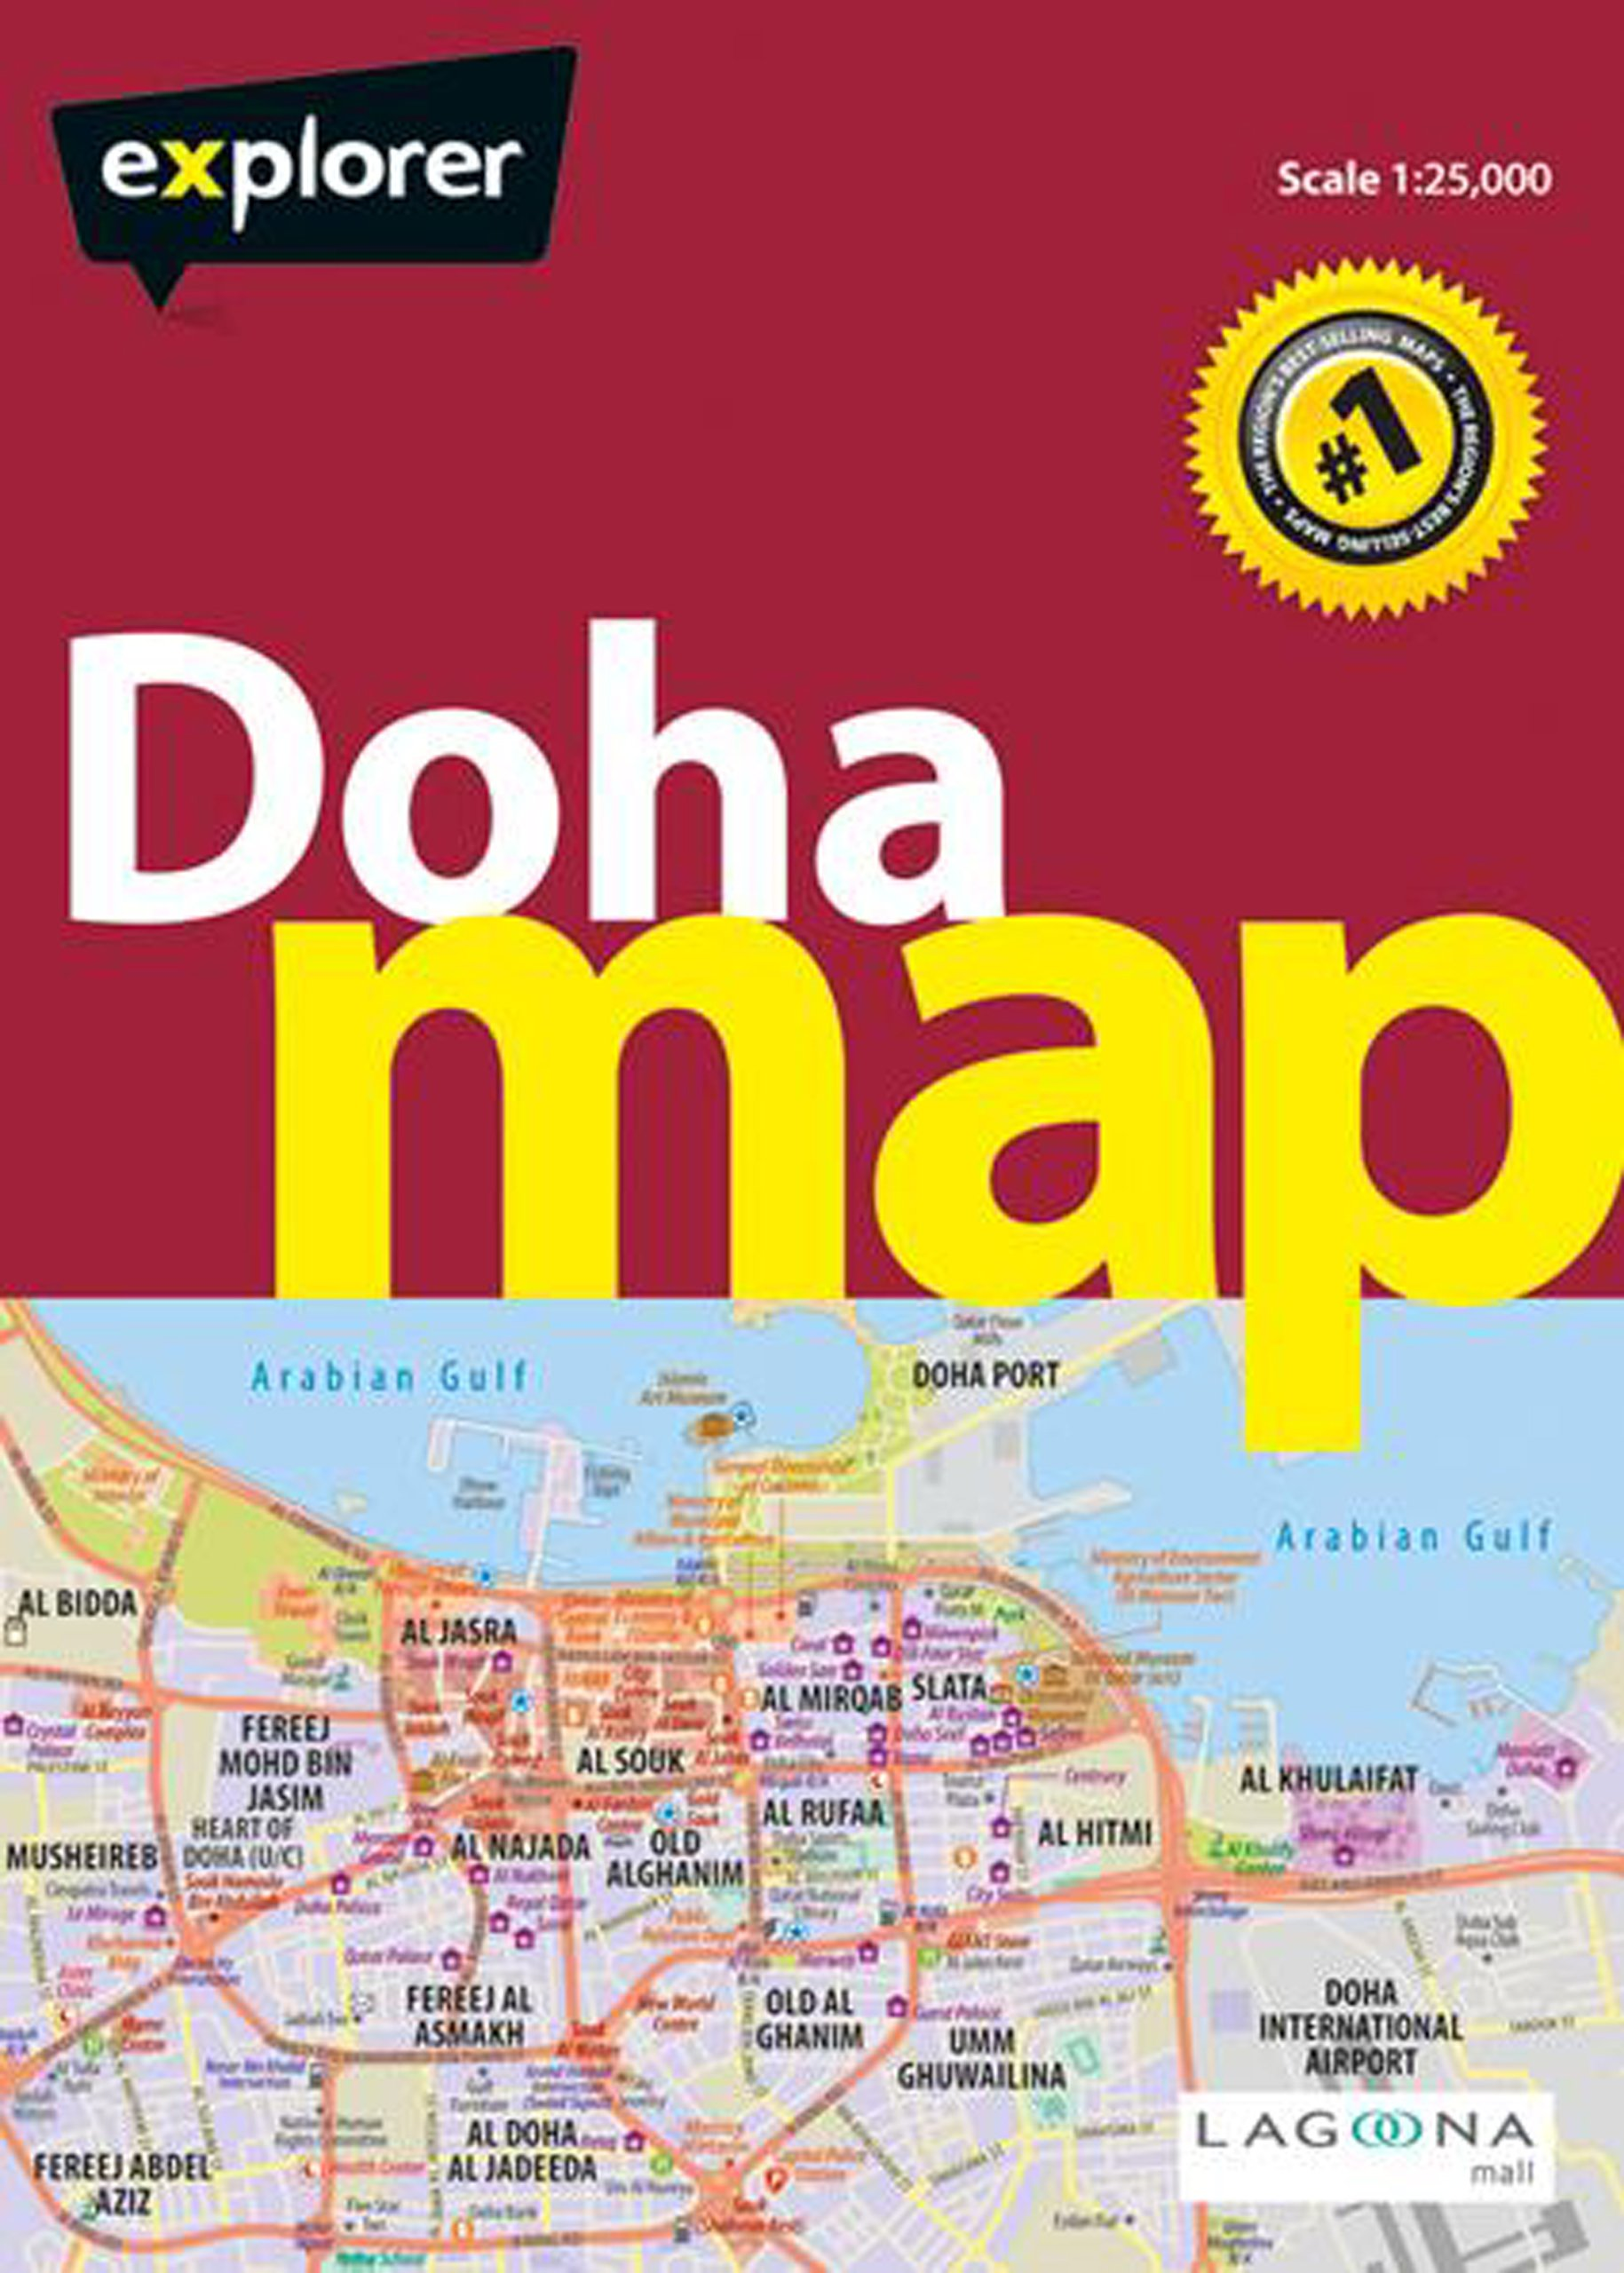 Doha & Qatar Map (City Map): Amazon.co.uk: Explorer ... Doha Map on tanzania map, united arab emirates map, al udeid air base, middle east map, dead sea map, bahrain map, doha corniche, qatar airways, dushanbe map, qatar map, riyadh map, sana'a map, al jazeera, ankara map, kuwait map, abu dhabi, education city, world map, abu dhabi map, manama map, dubai map, mosul map, medina map, kuwait city, doha international airport, damascus map, jerusalem map, souq waqif, baghdad map, aspire tower,